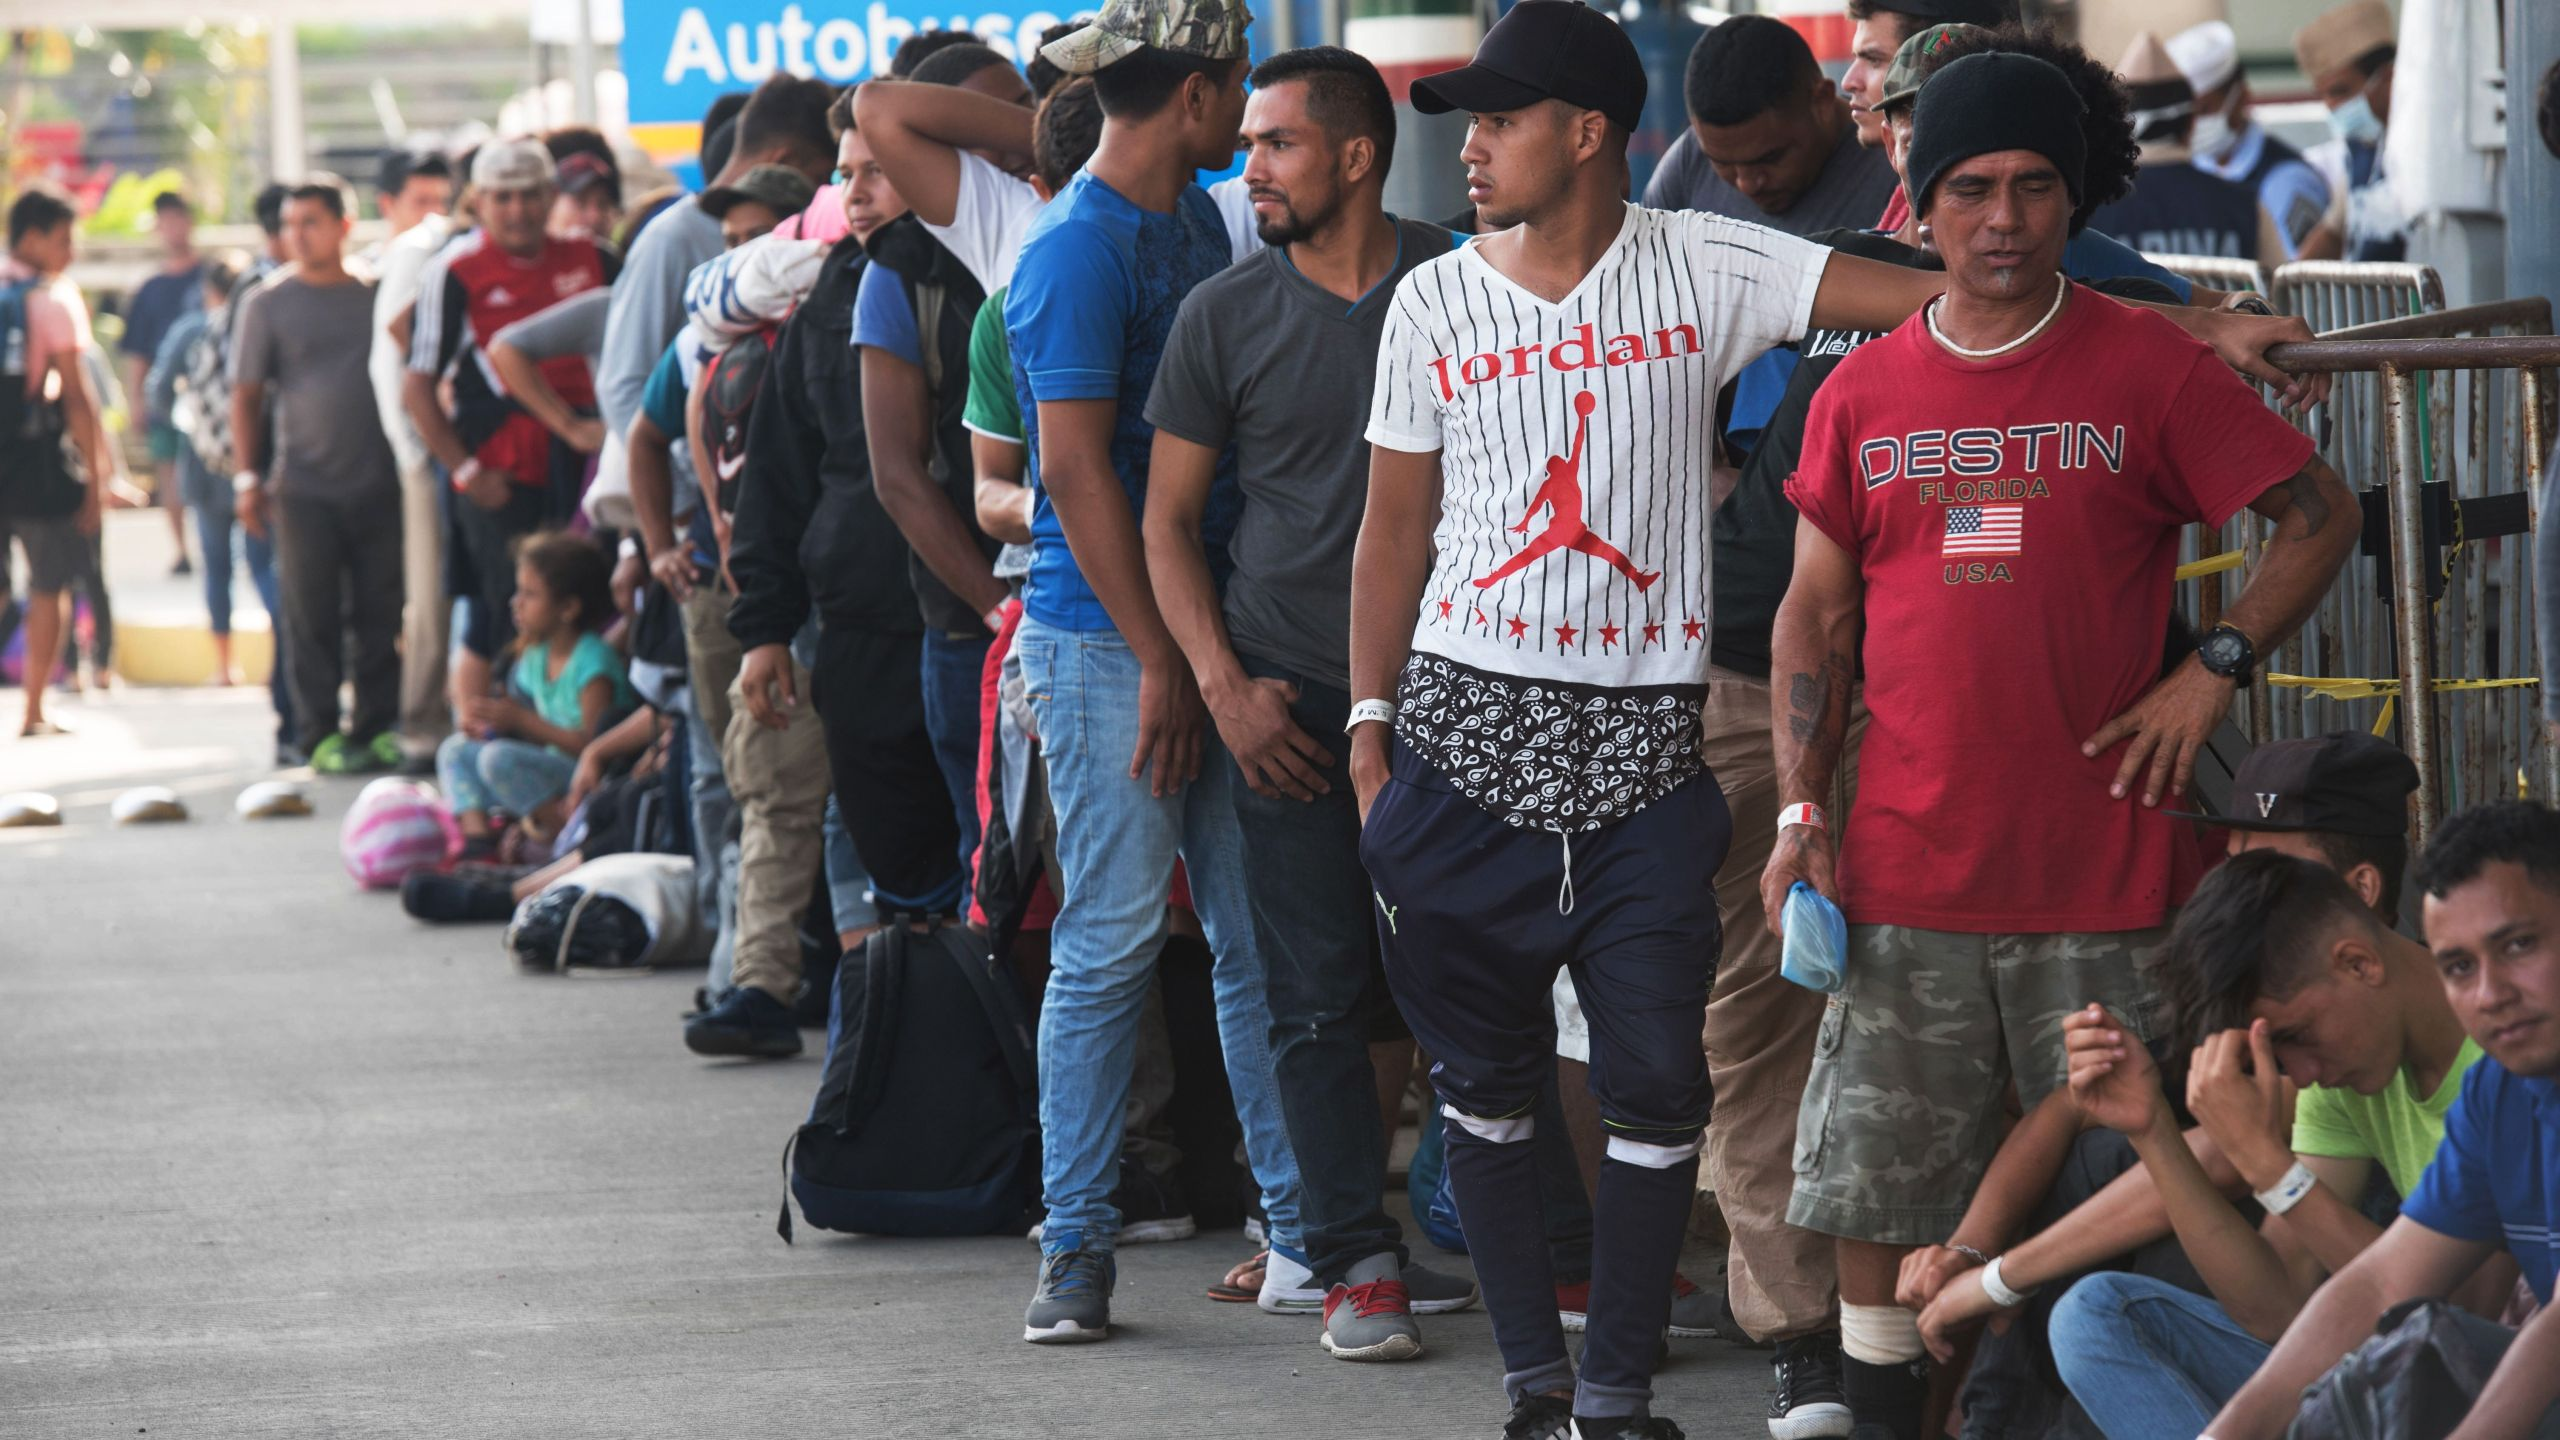 Central American migrants heading to the United States with a second caravan wait for immigration officials to give them their visitor card to continue on their journey, in Ciudad Hidalgo, Chiapas state, southern Mexico on Jan. 21, 2019. (Credit: Alejandro Melendez / AFP / Getty Images)